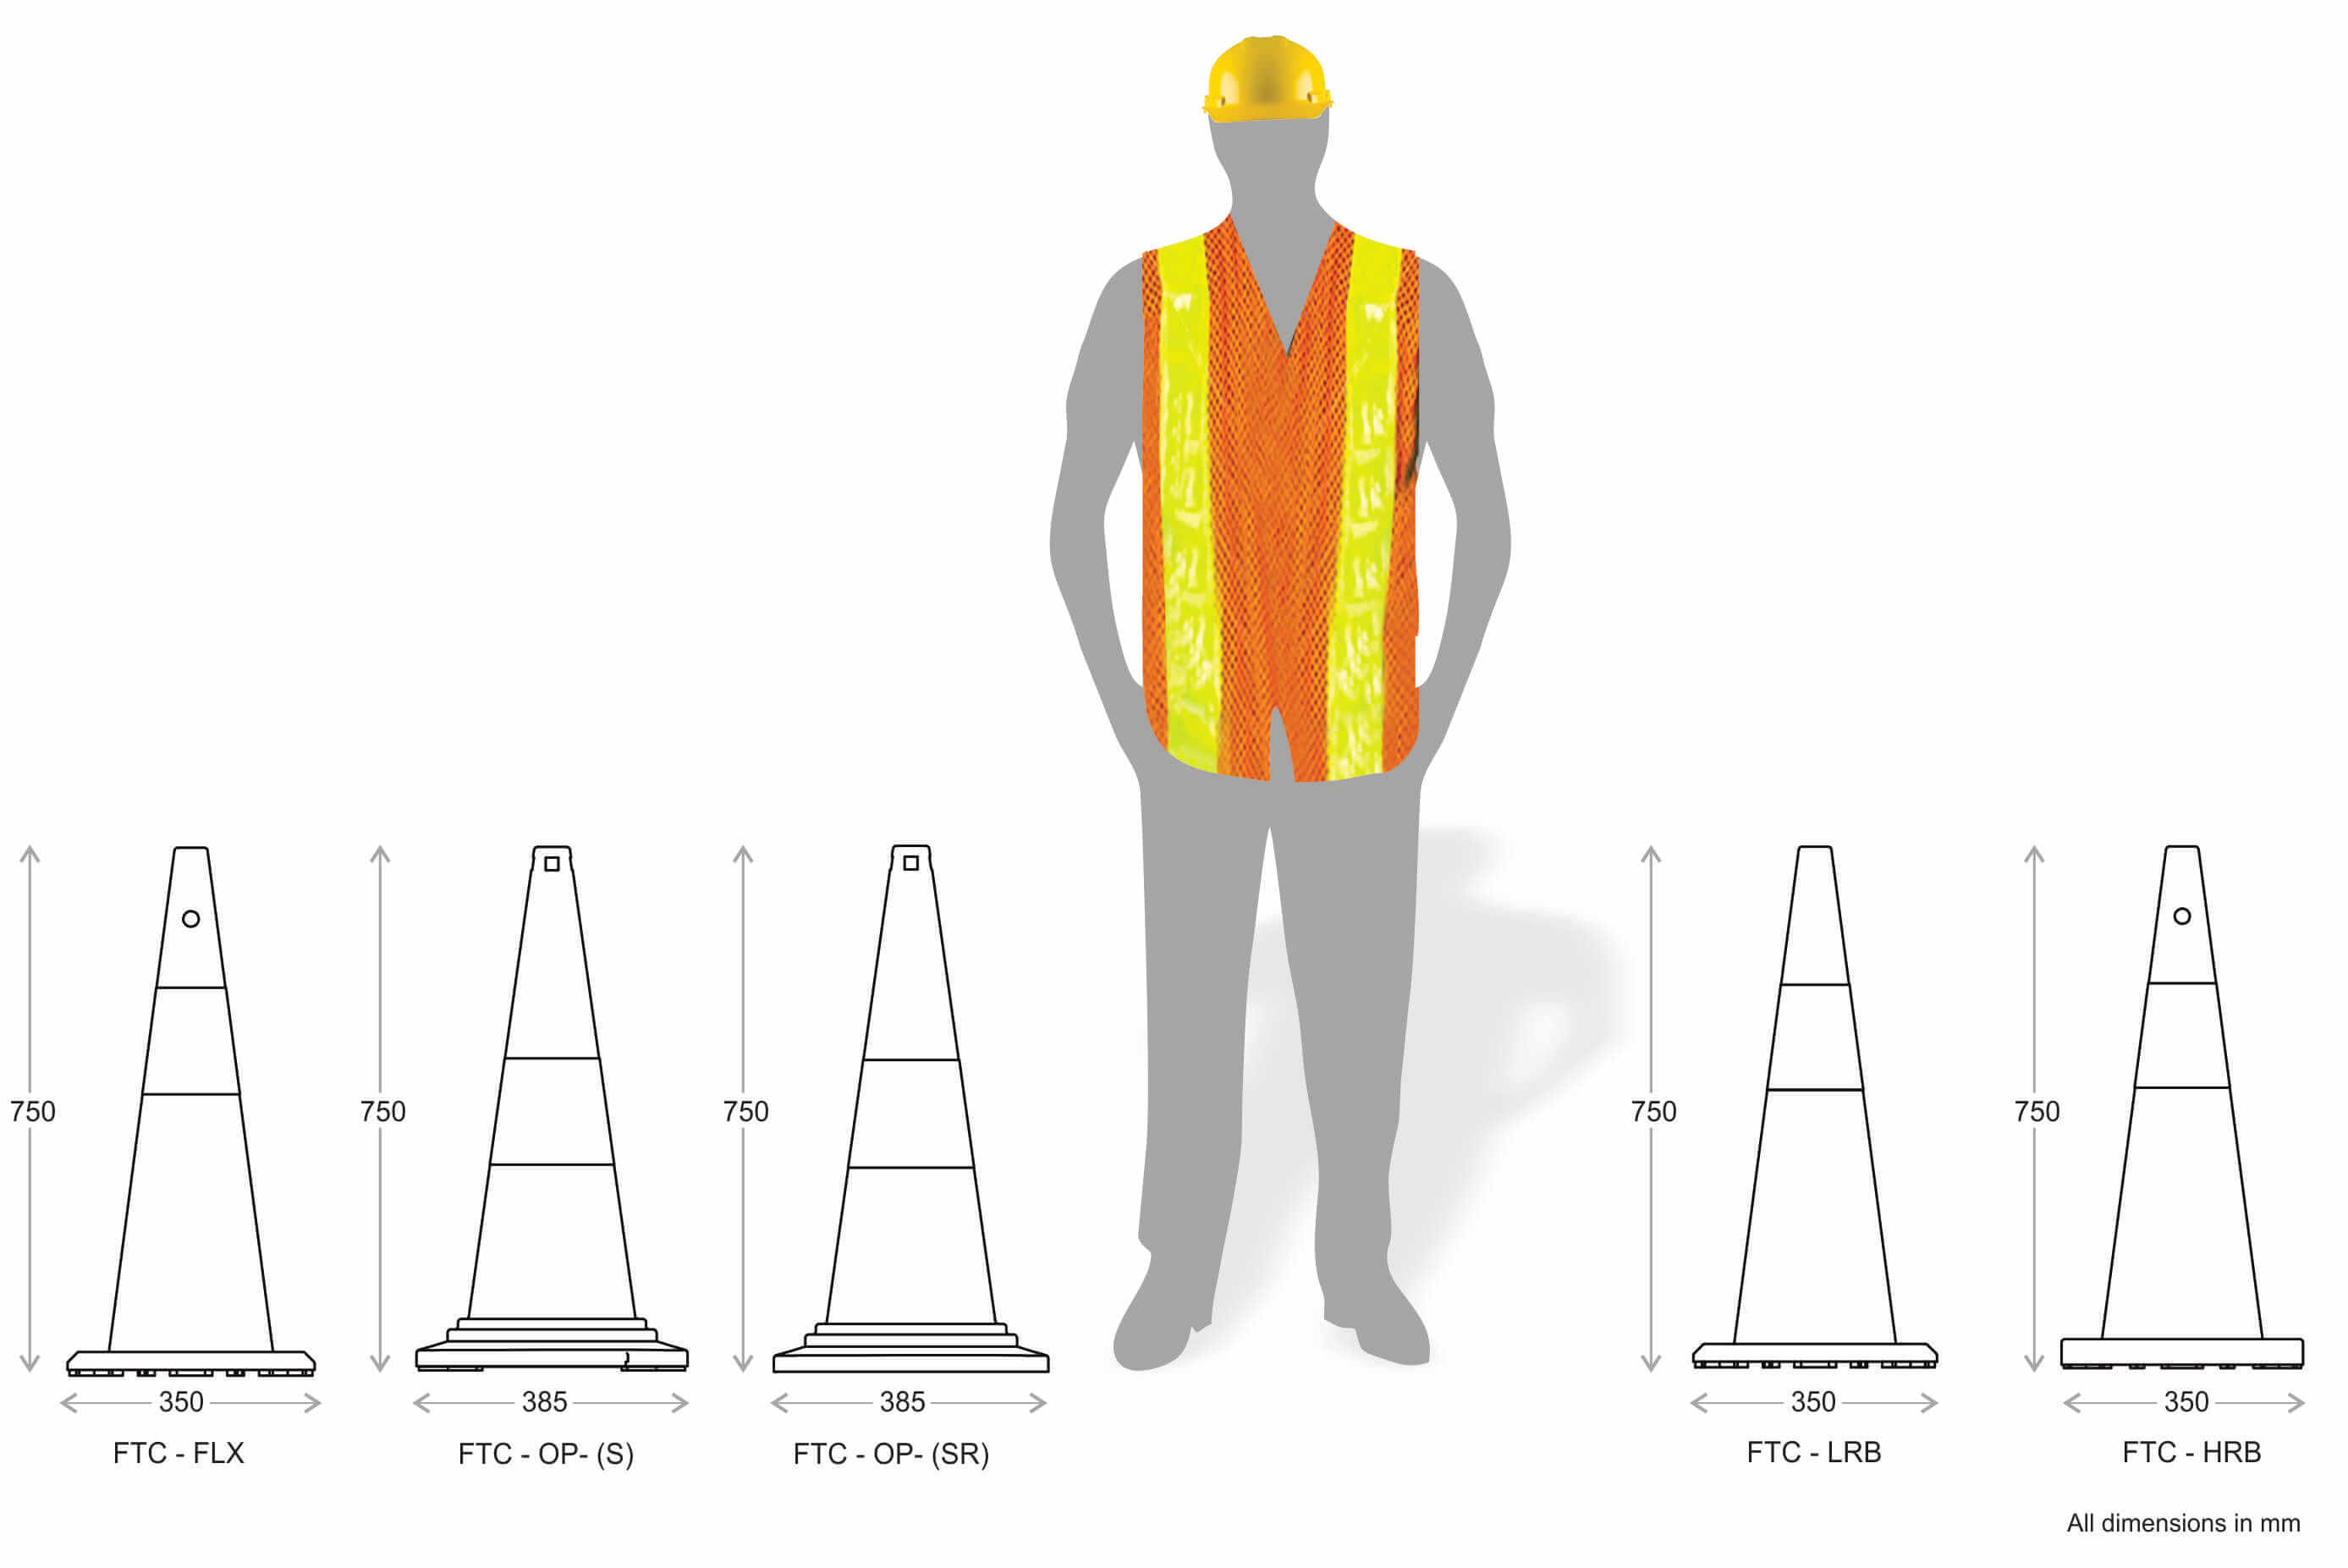 750 mm tall cones